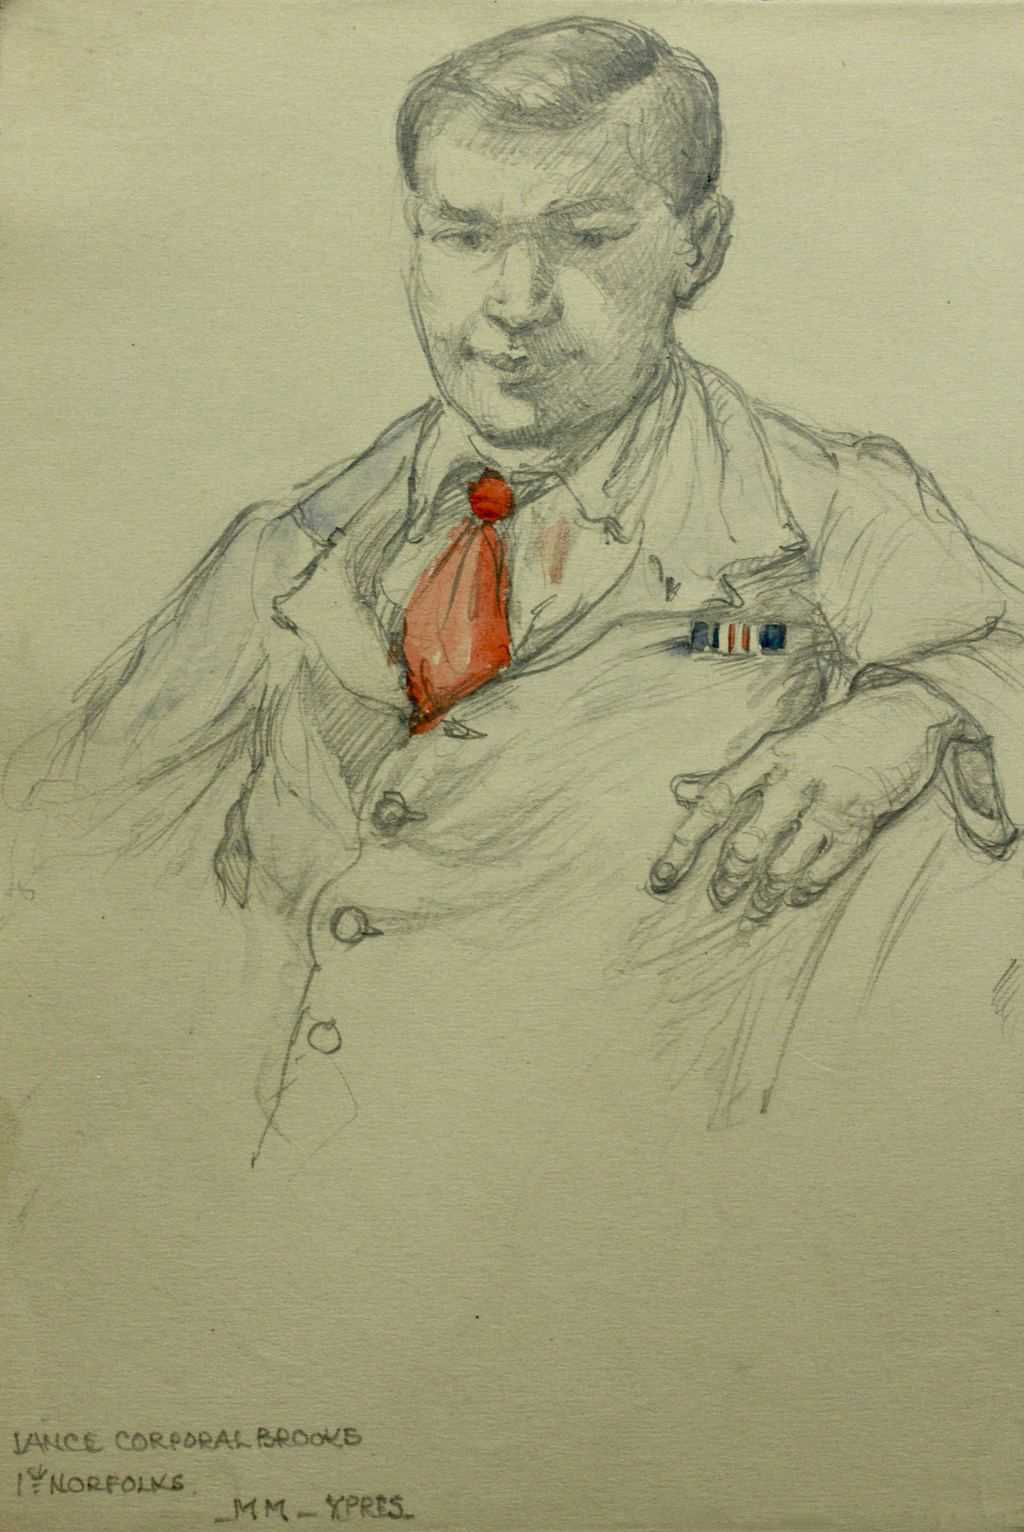 Sketch of Lance Corporqal BROOKS 1st Norfolks / MM Ypres